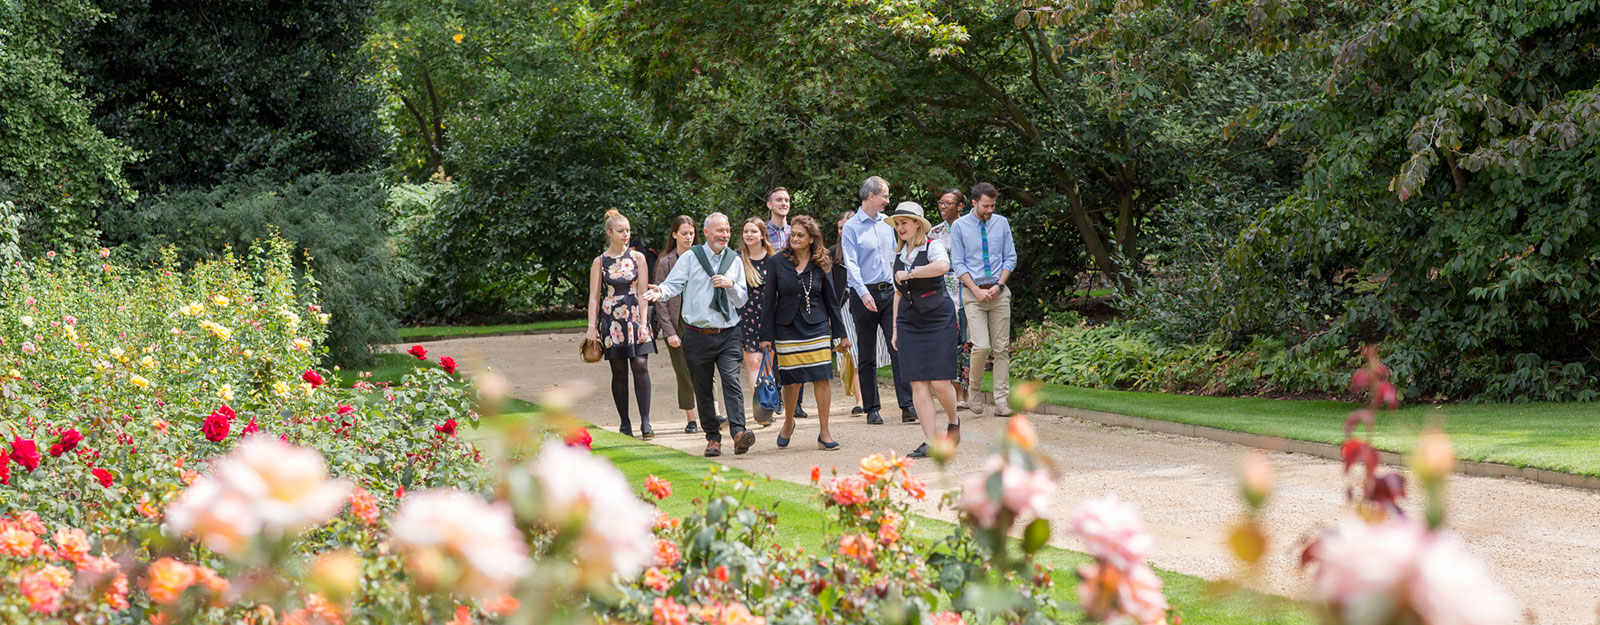 Enjoy a Garden Highlights tour at Buckingham Palace